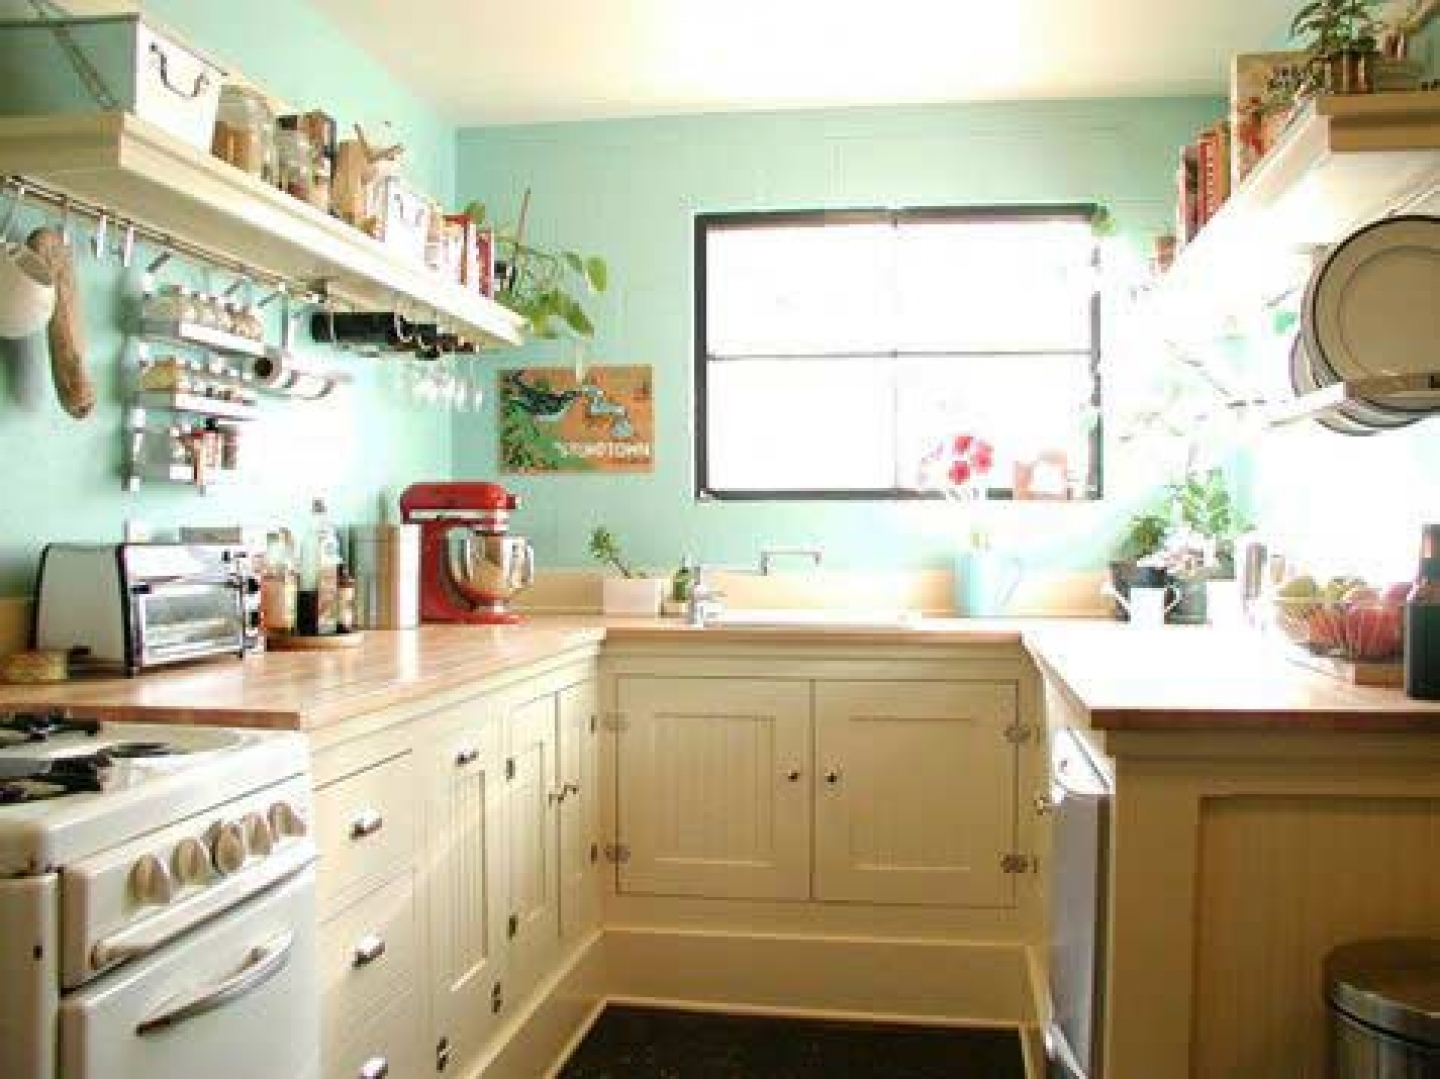 Small kitchen update ideas to transform it hotter Small square kitchen designs